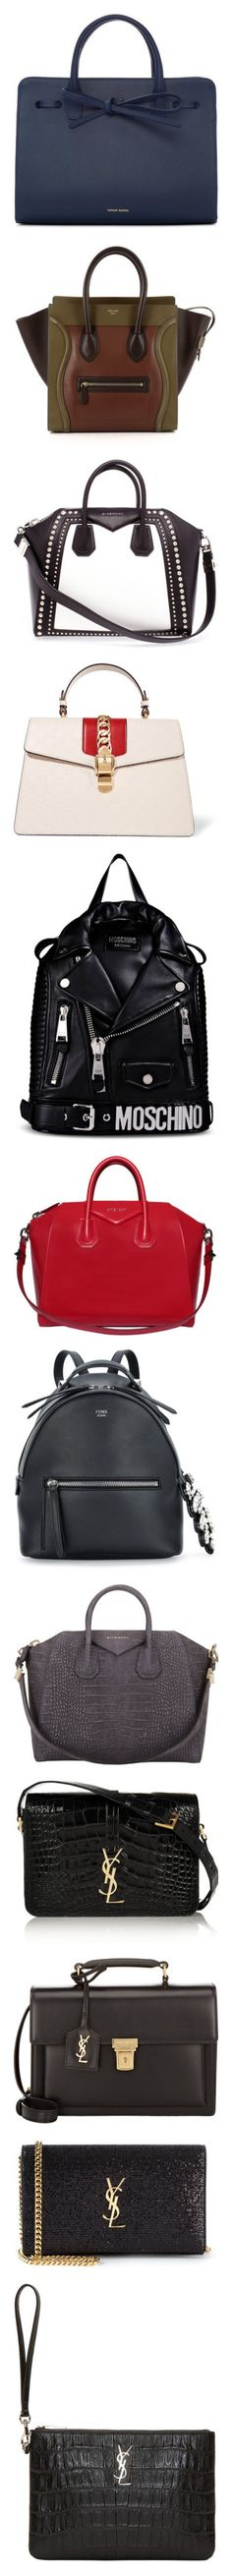 """Bags"" by crazysoshi ❤ liked on Polyvore featuring bags, handbags, tote bags, purses, navy, mansur gavriel tote, man bag, leather purses, mini leather tote and navy blue leather handbags"